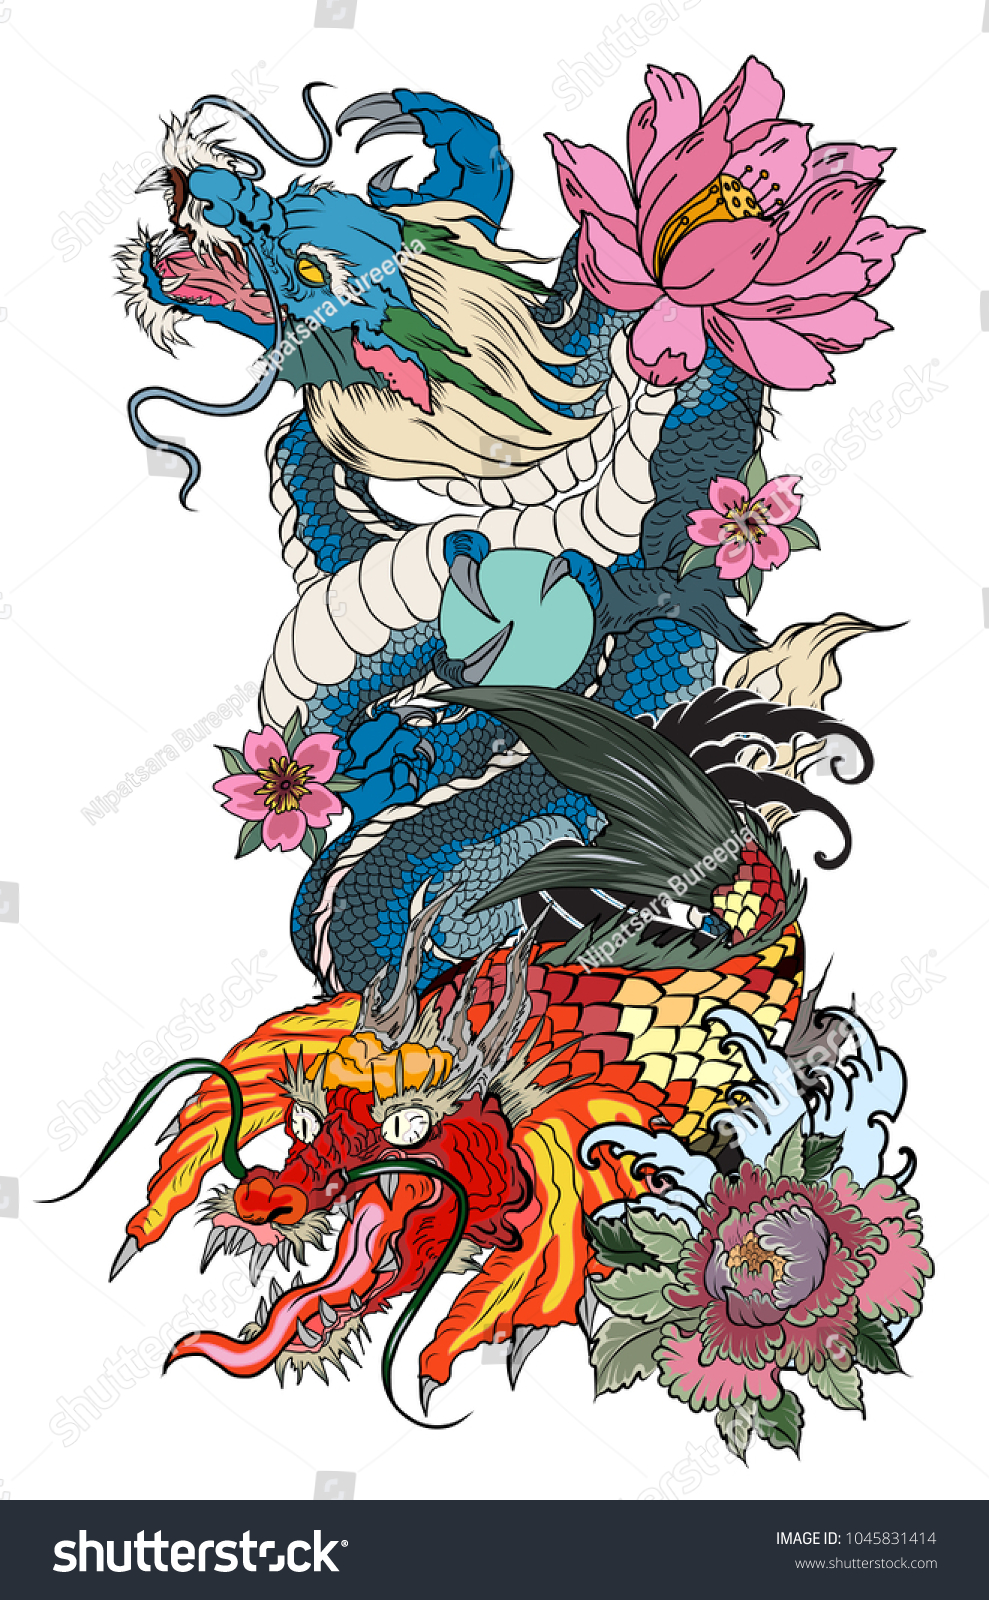 Dragon and lotus flower tattoos images flower wallpaper hd dragon koi dragon lotus flower tattoopeach stock vector 1045831414 dragon with koi dragon and lotus flower izmirmasajfo Images